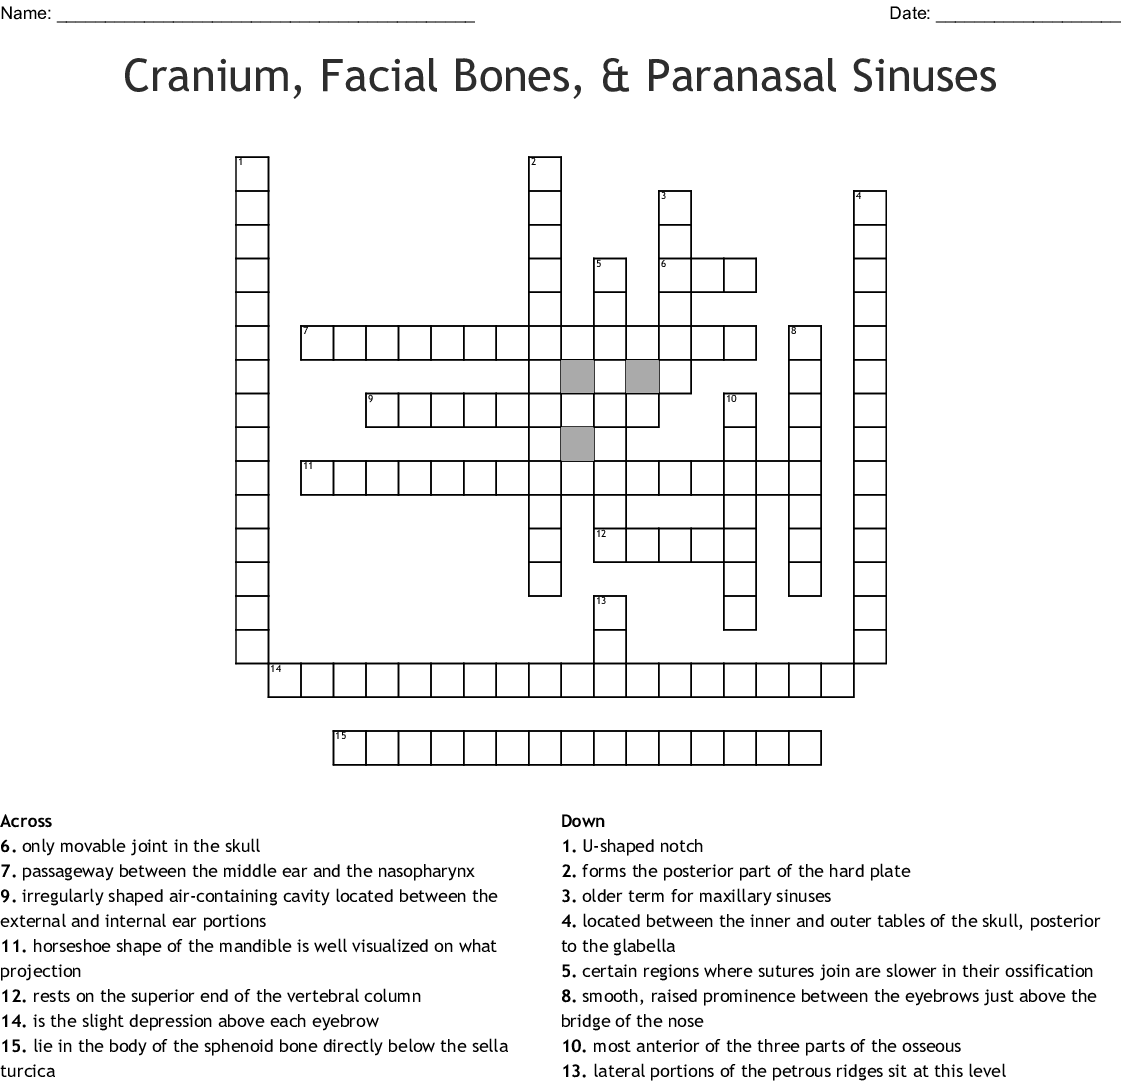 Cranium Facial Bones And Paranasal Sinuses Crossword Wordmint